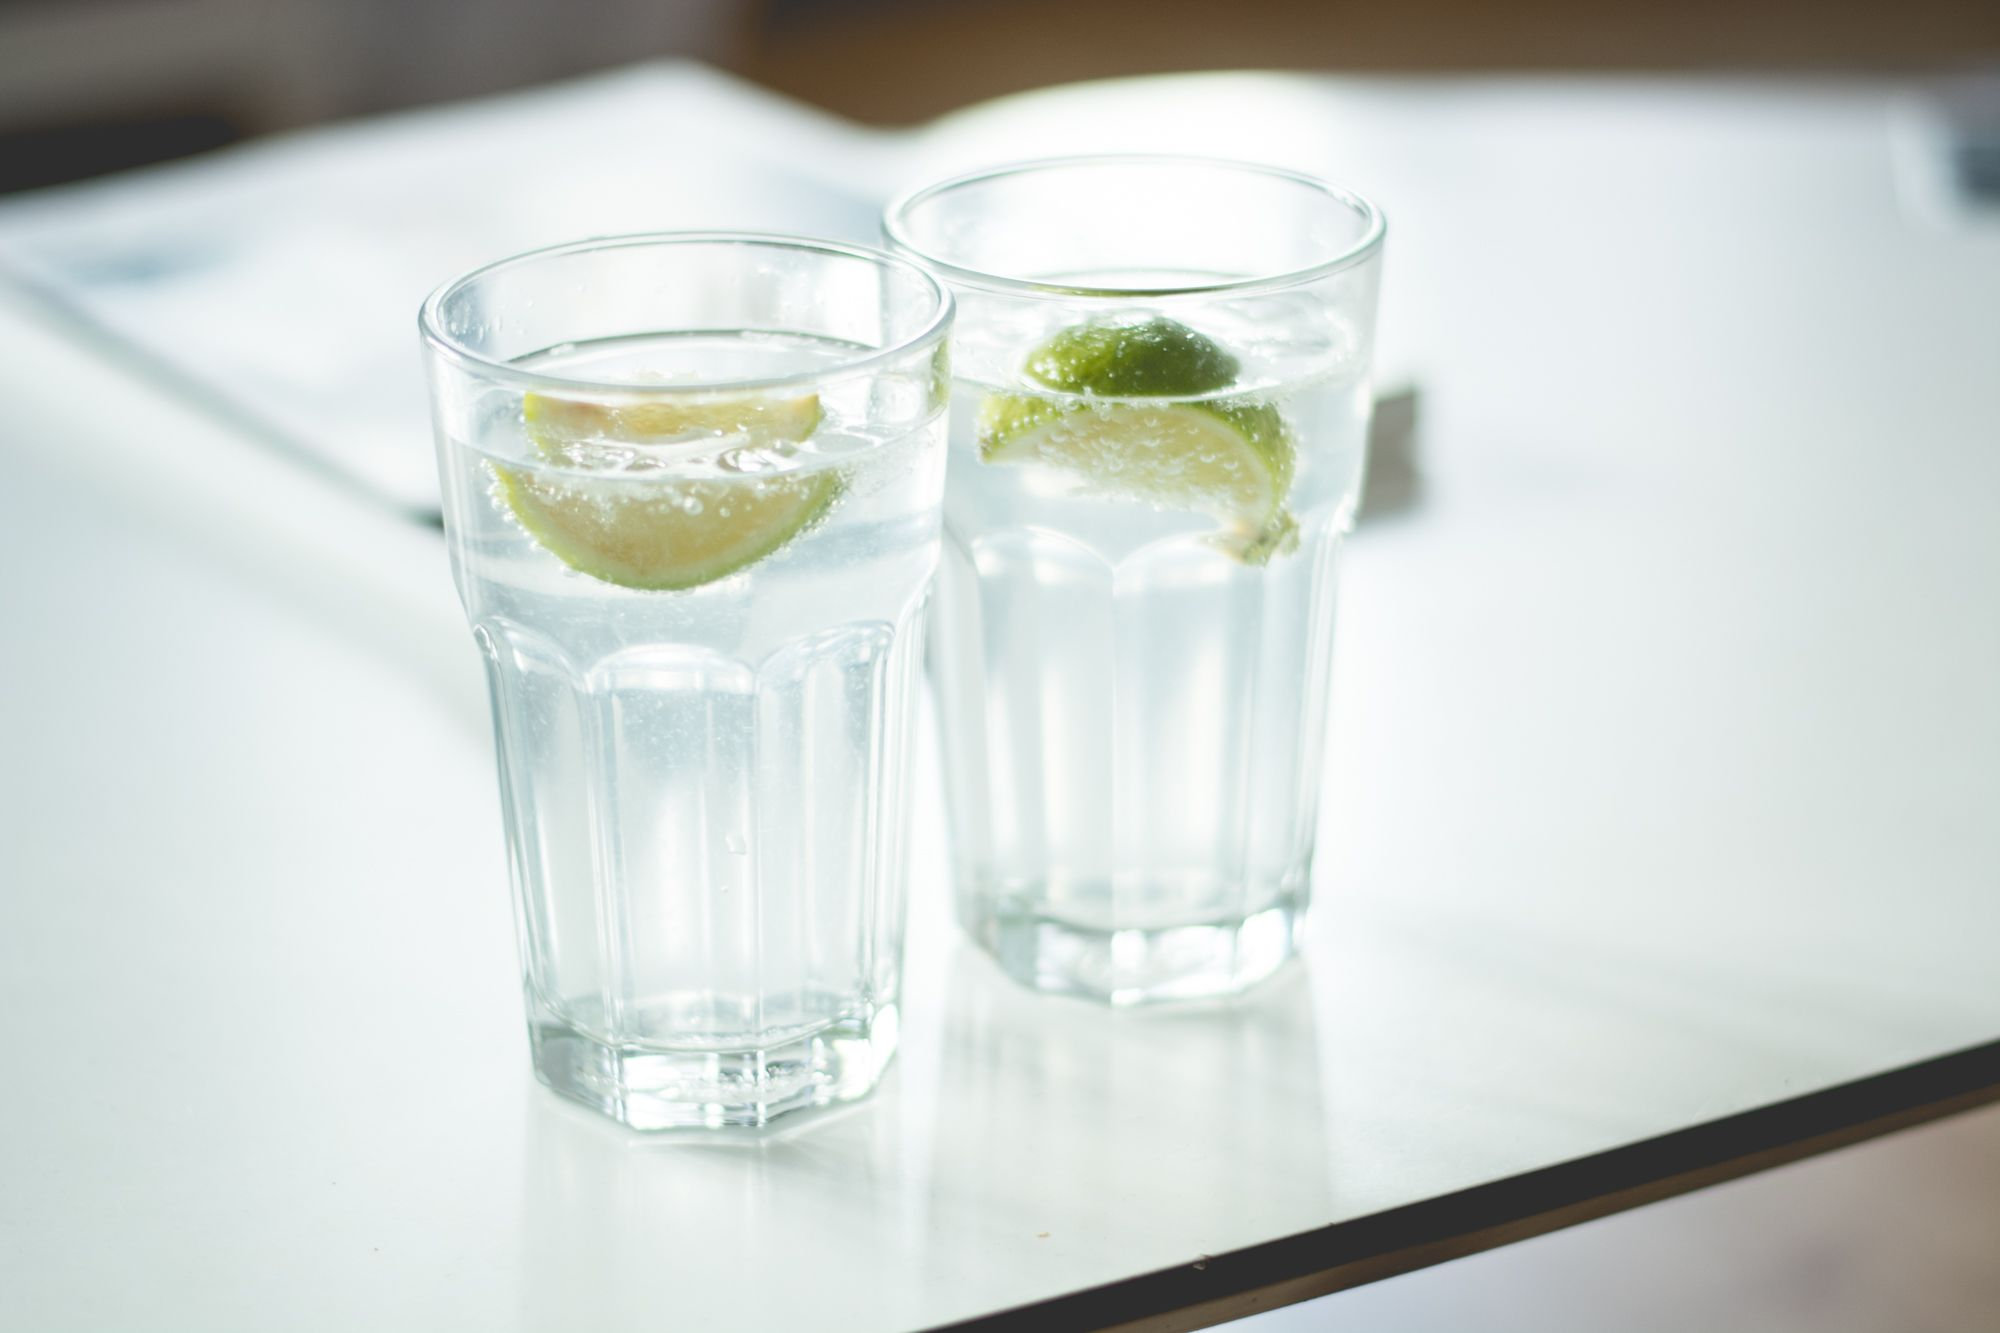 Gind-and-tonic.jpg